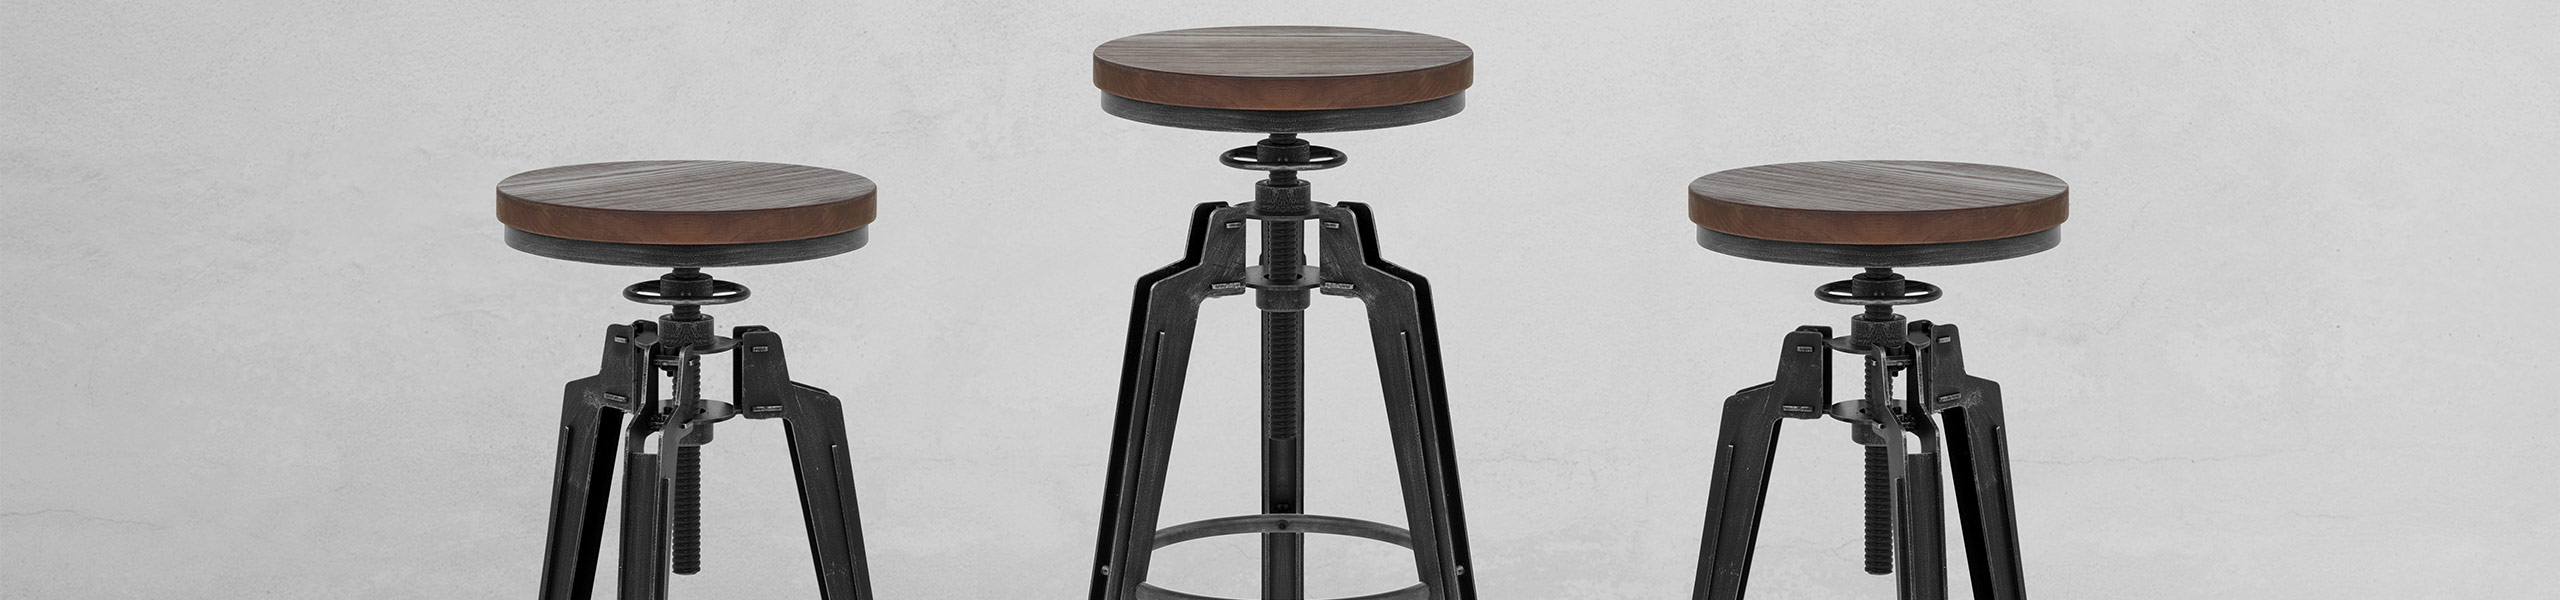 Trio Stool Gunmetal Video Banner